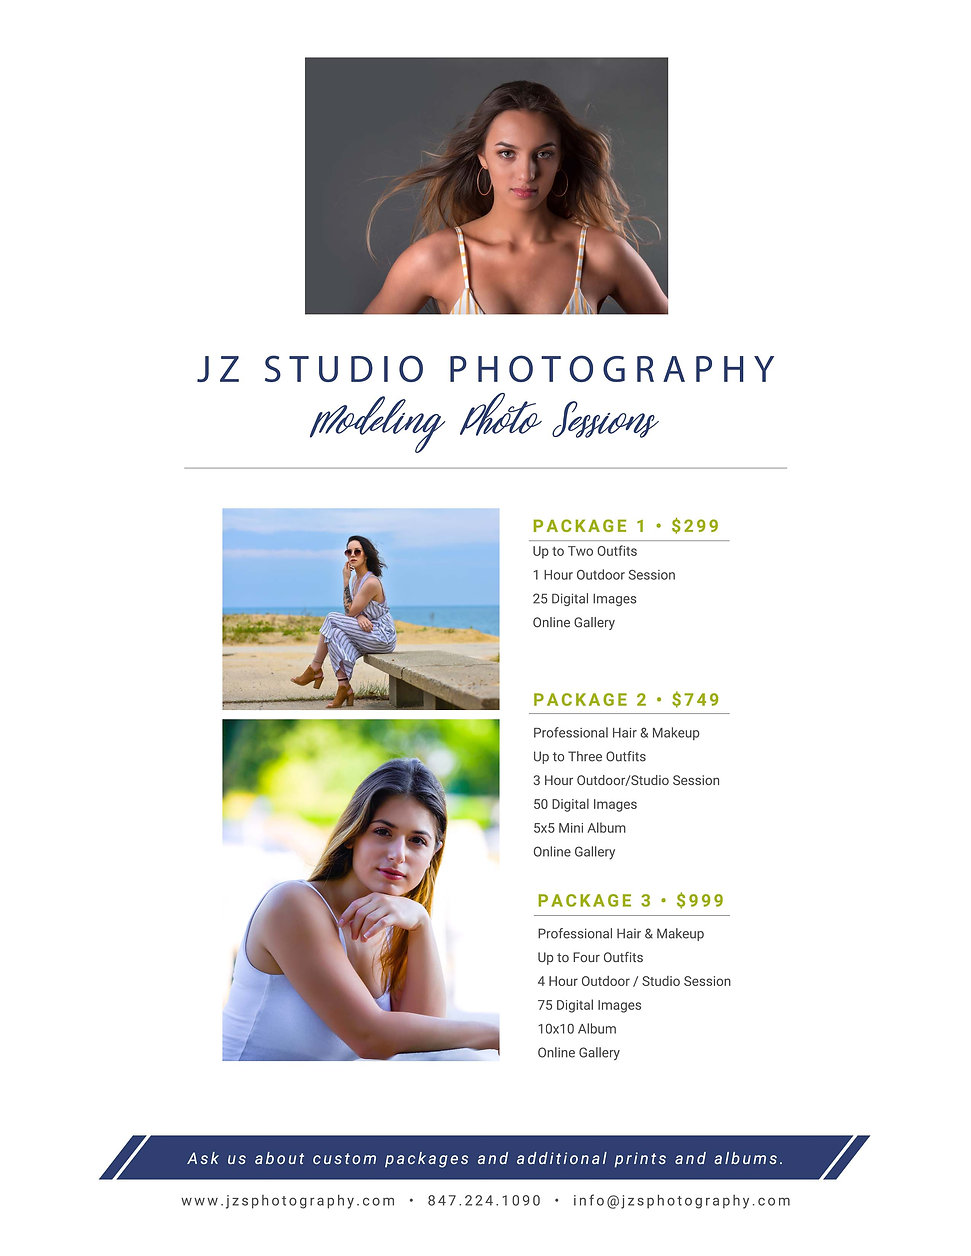 JZ STUDIO PHOTOGRAPHY MODELING PACKAGES.